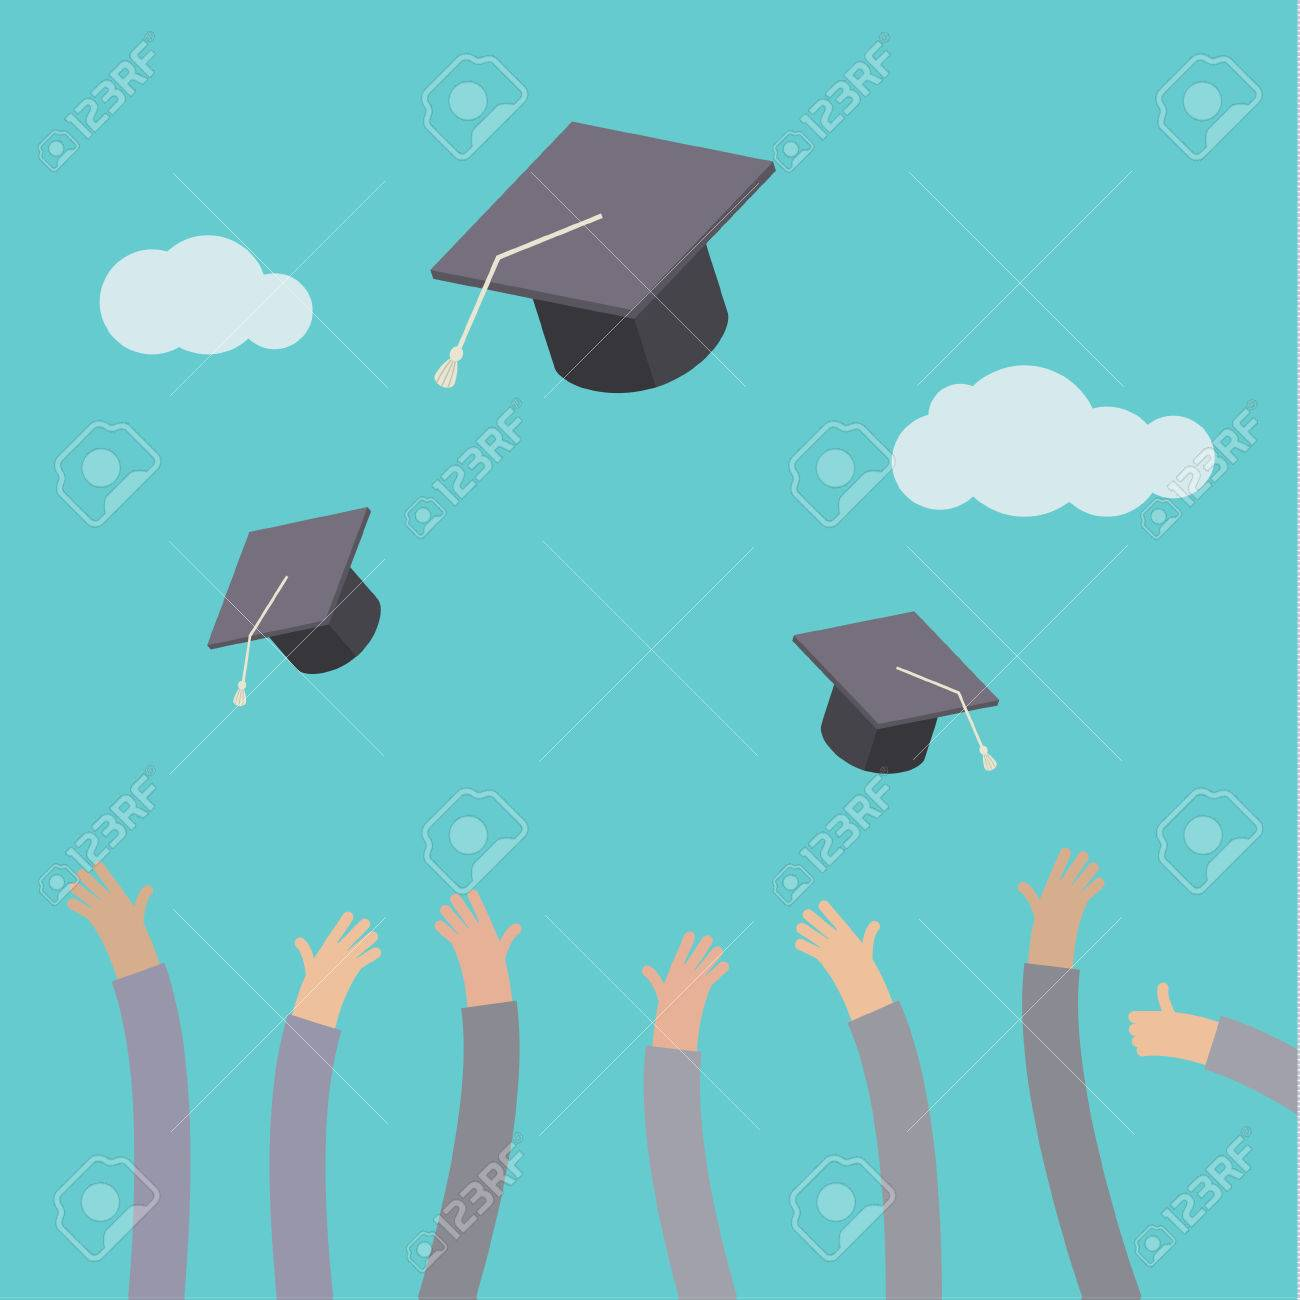 Concept of education. Graduates throwing graduation hats in the air. - 45723670